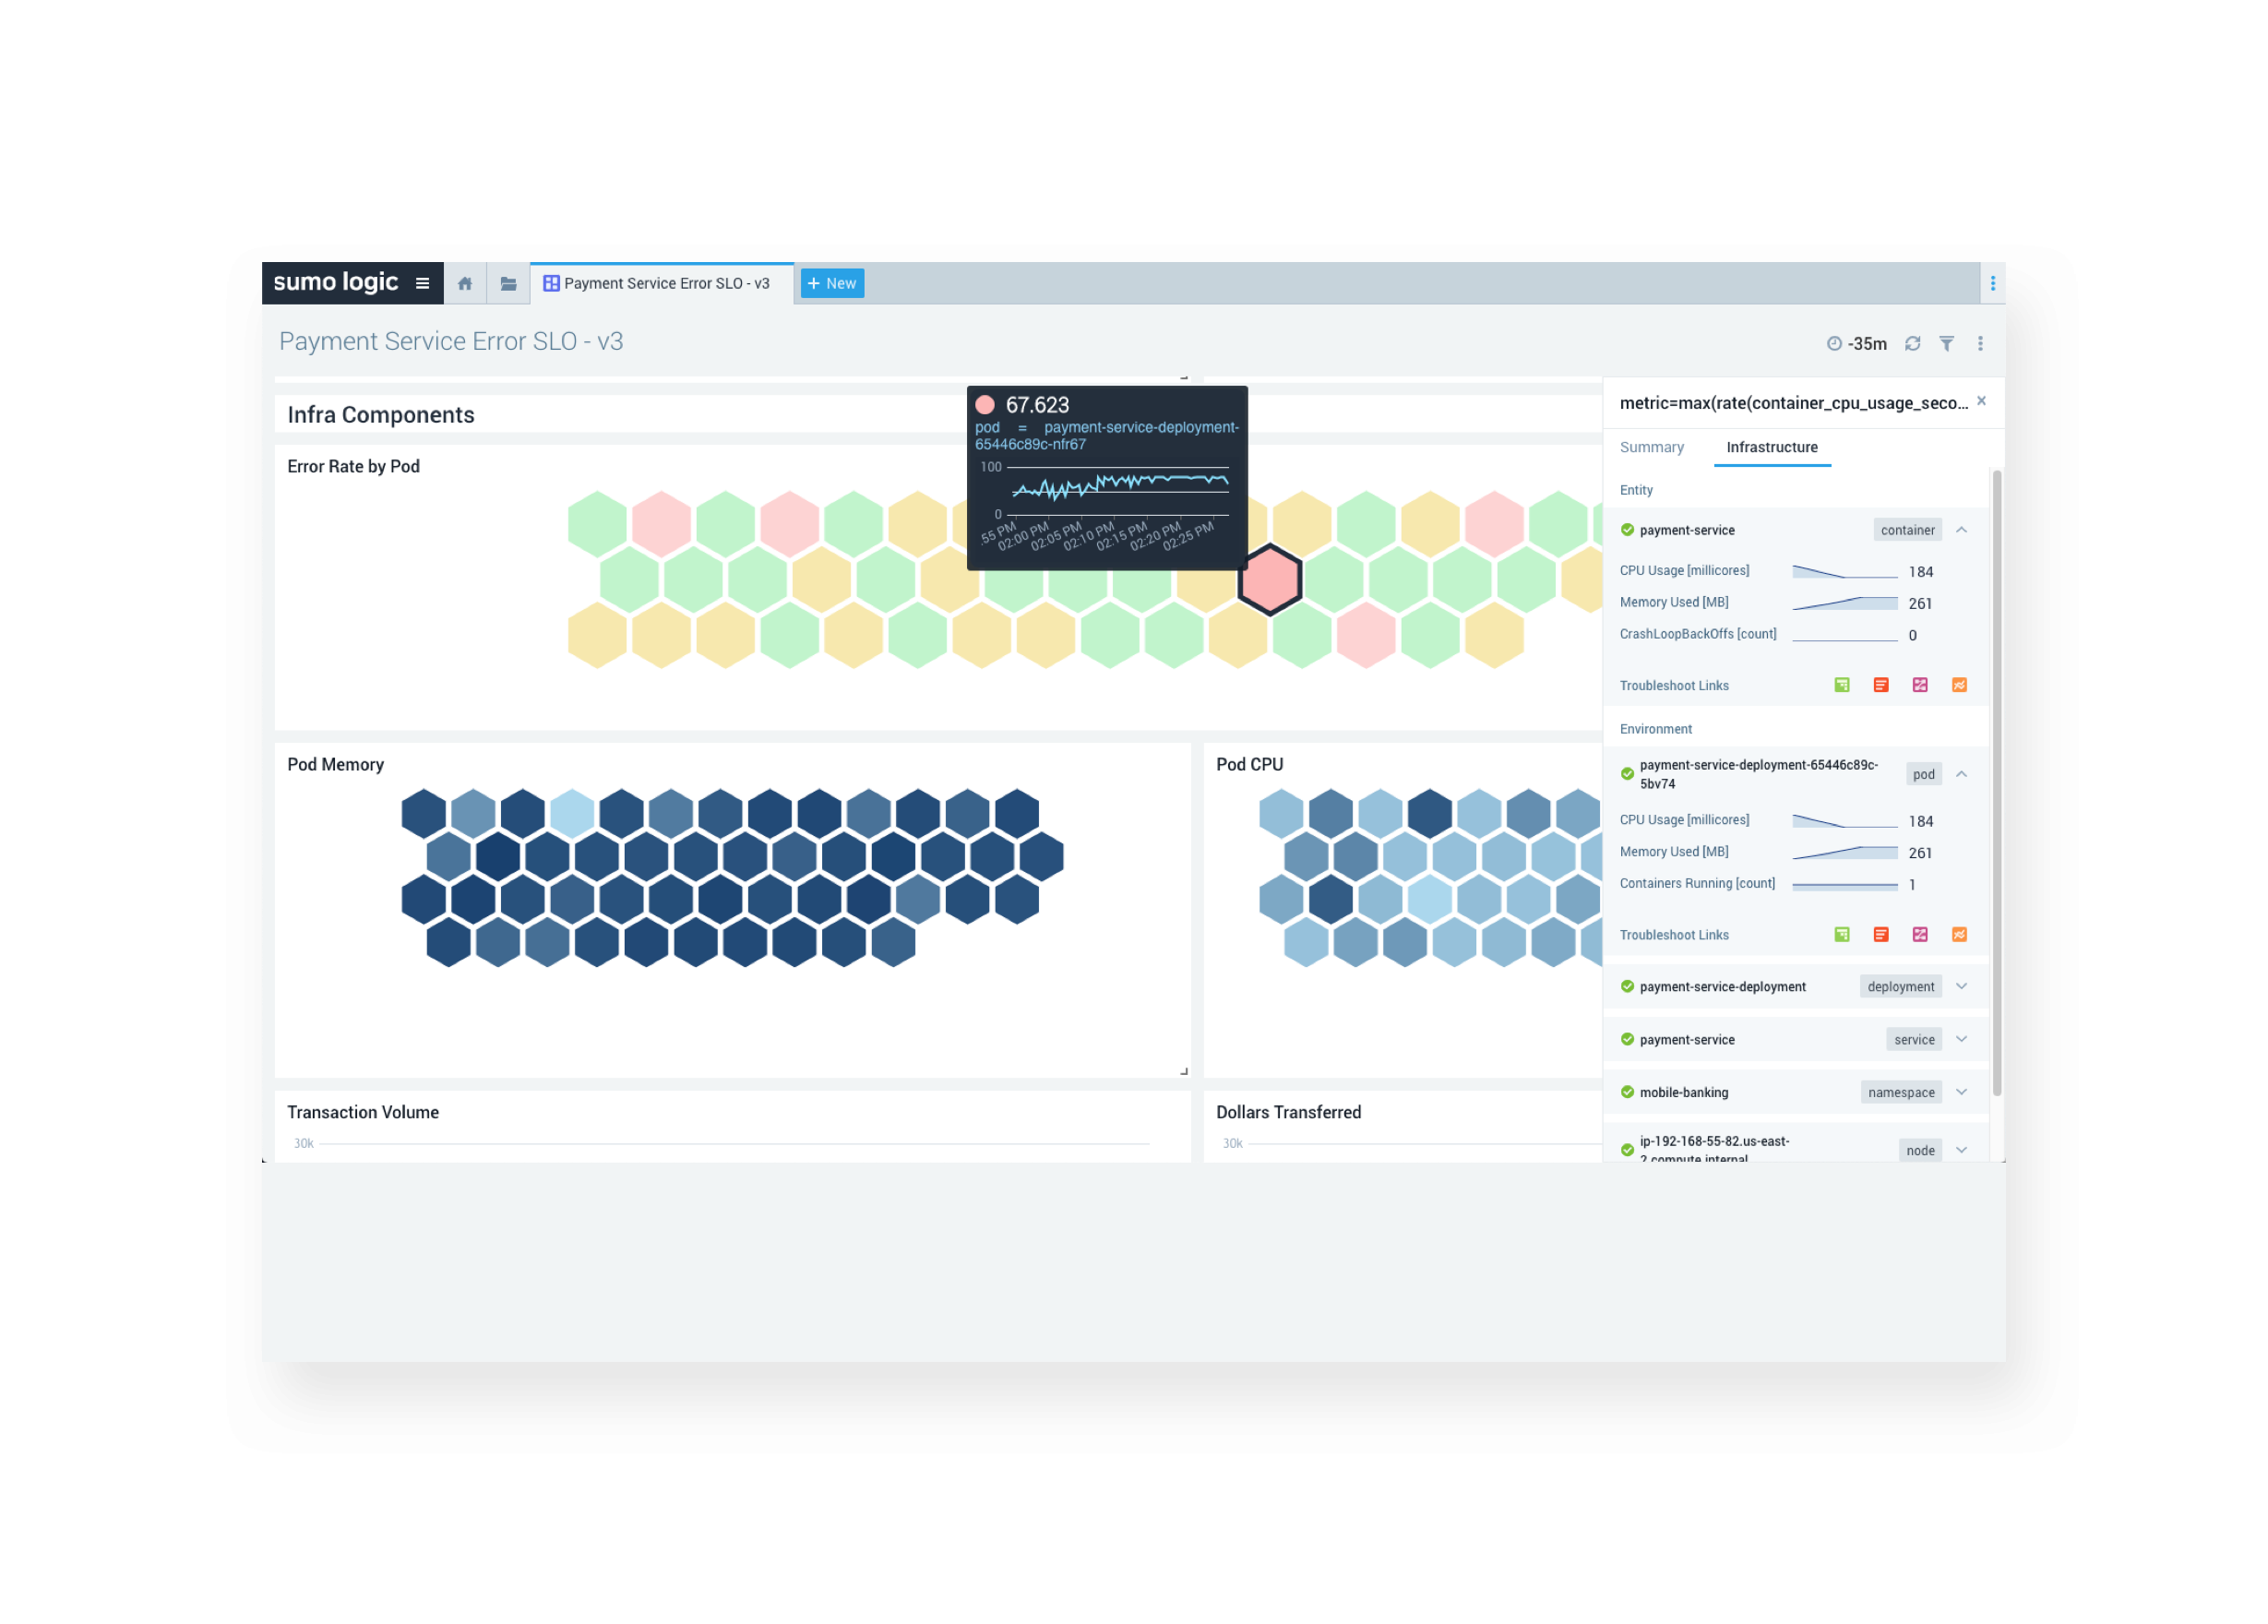 Resolve issues quickly with a new view of Microservices